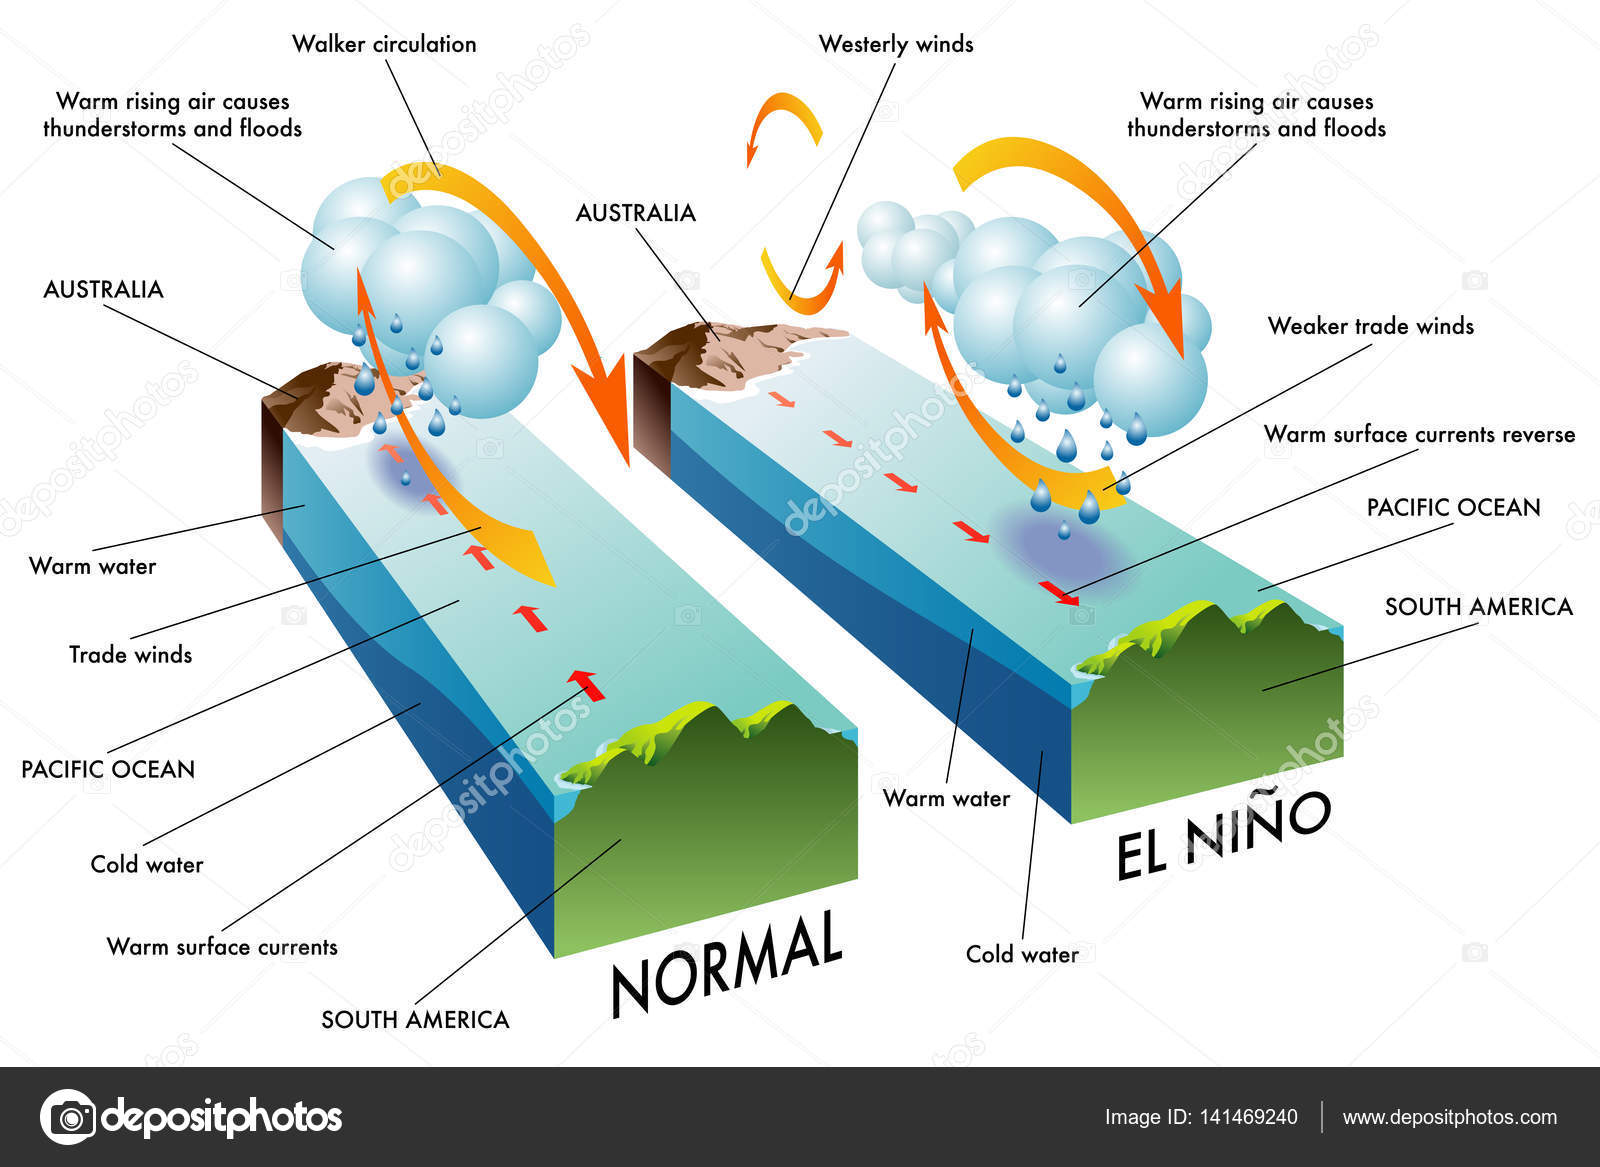 understanding the phenomenon of el nino I ask the young scientific community in the world who studies the phenomenon of el niño, do not forget the early work of mc phaden, quinn, van loon, namias, rasmusson, zebiak, cane, caviedes, arntz, namias, glantz, wyrtki, not to mention walker and bliss, henry diaz, ropelewsky, trenberth.